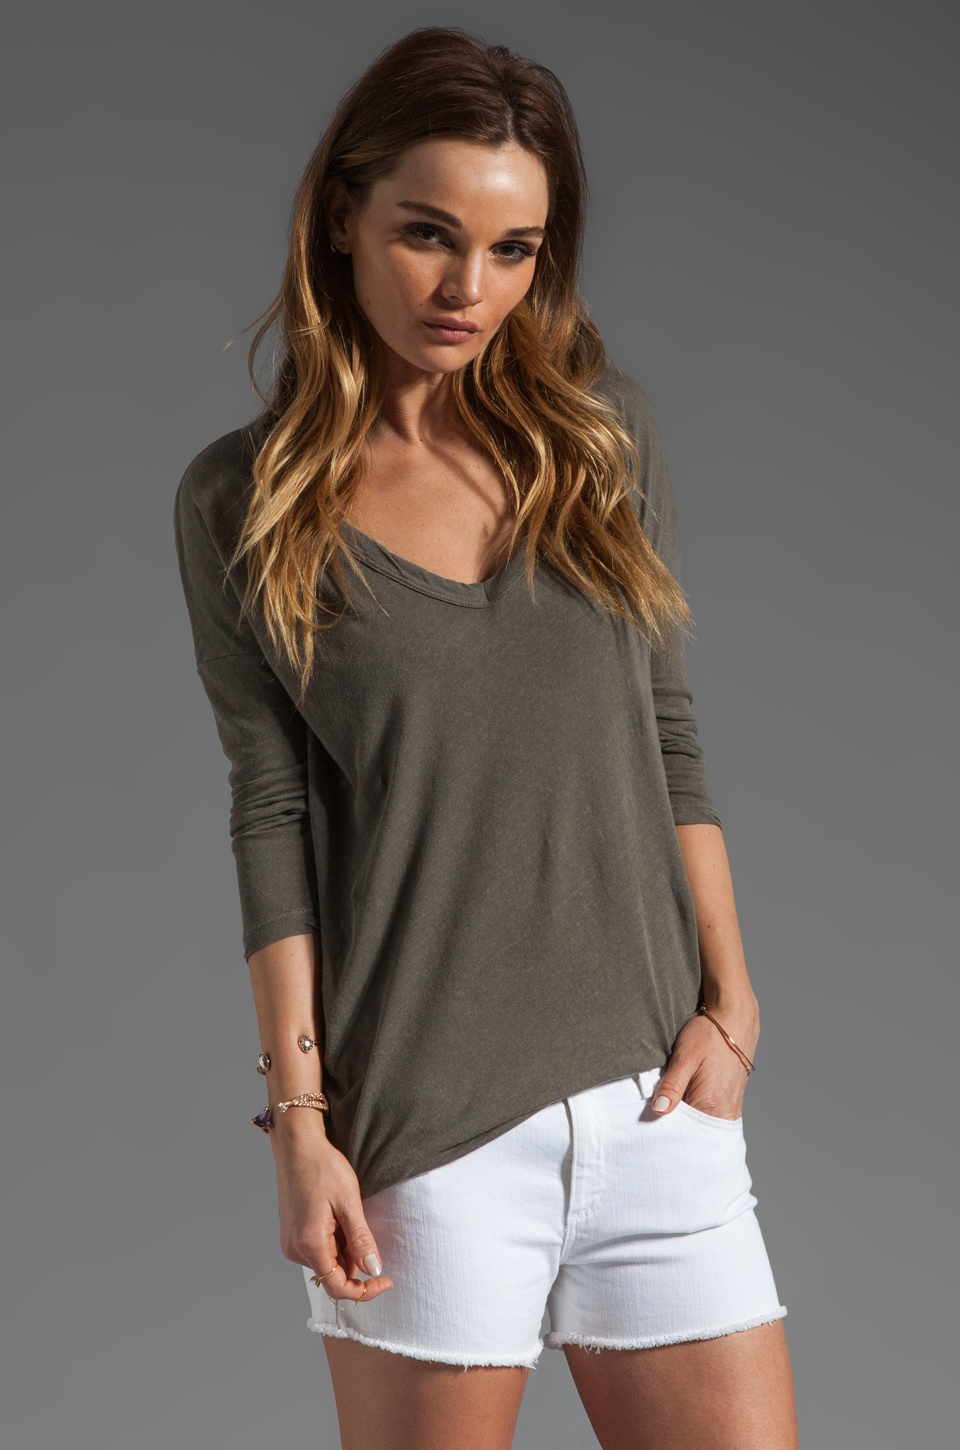 James Perse Relaxed Deep V Top in Burro